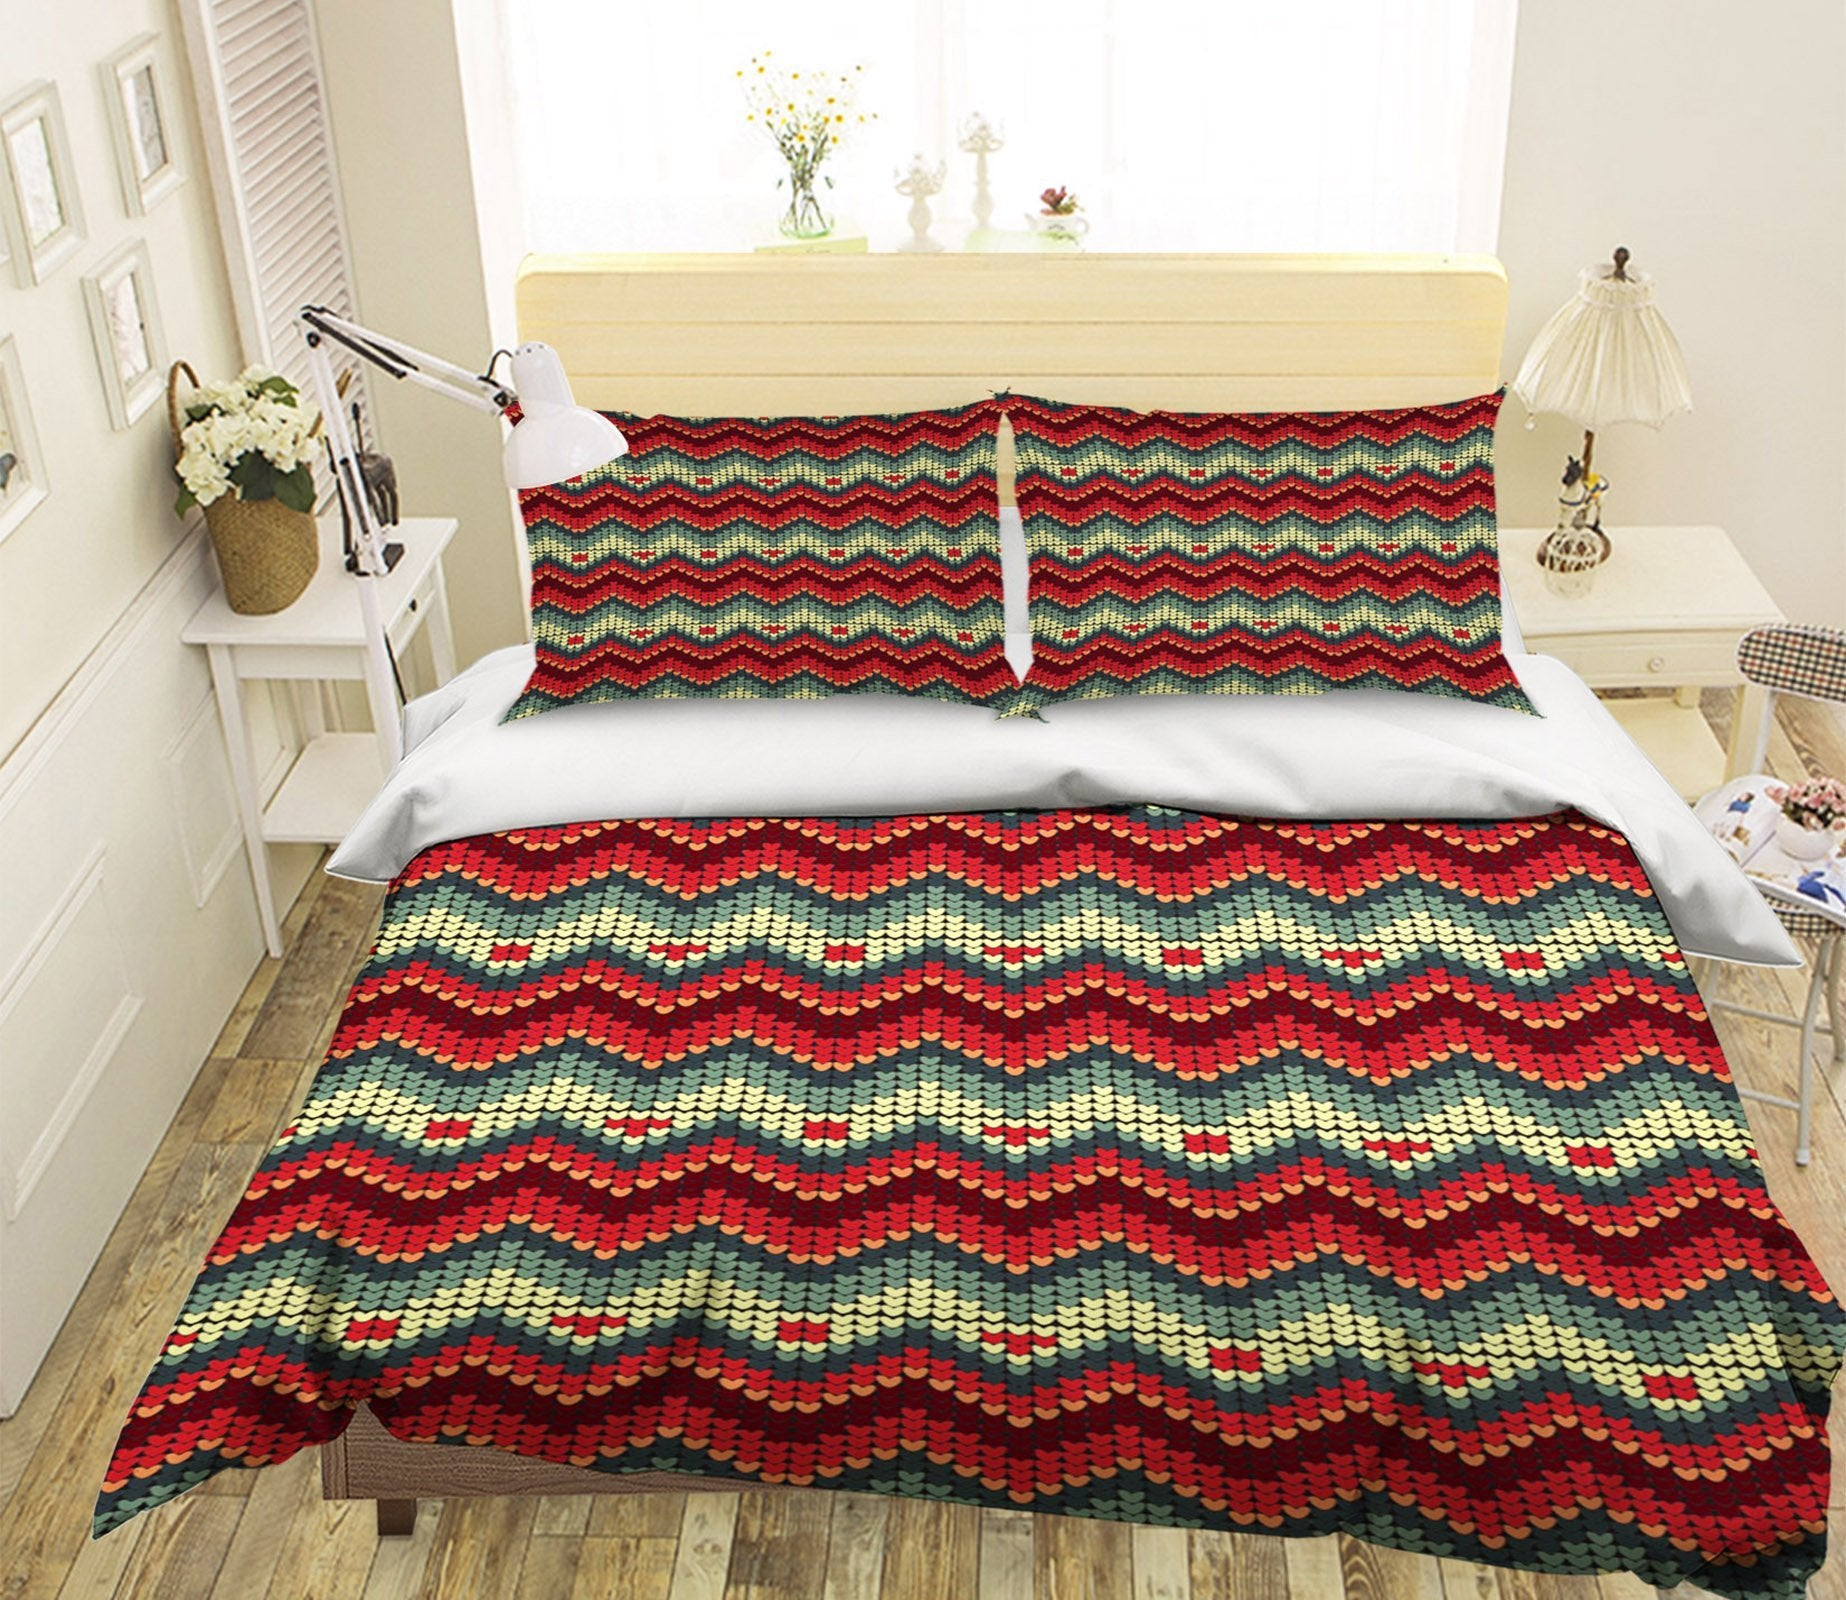 3D Christmas Red Wave 18 Bed Pillowcases Quilt Quiet Covers AJ Creativity Home